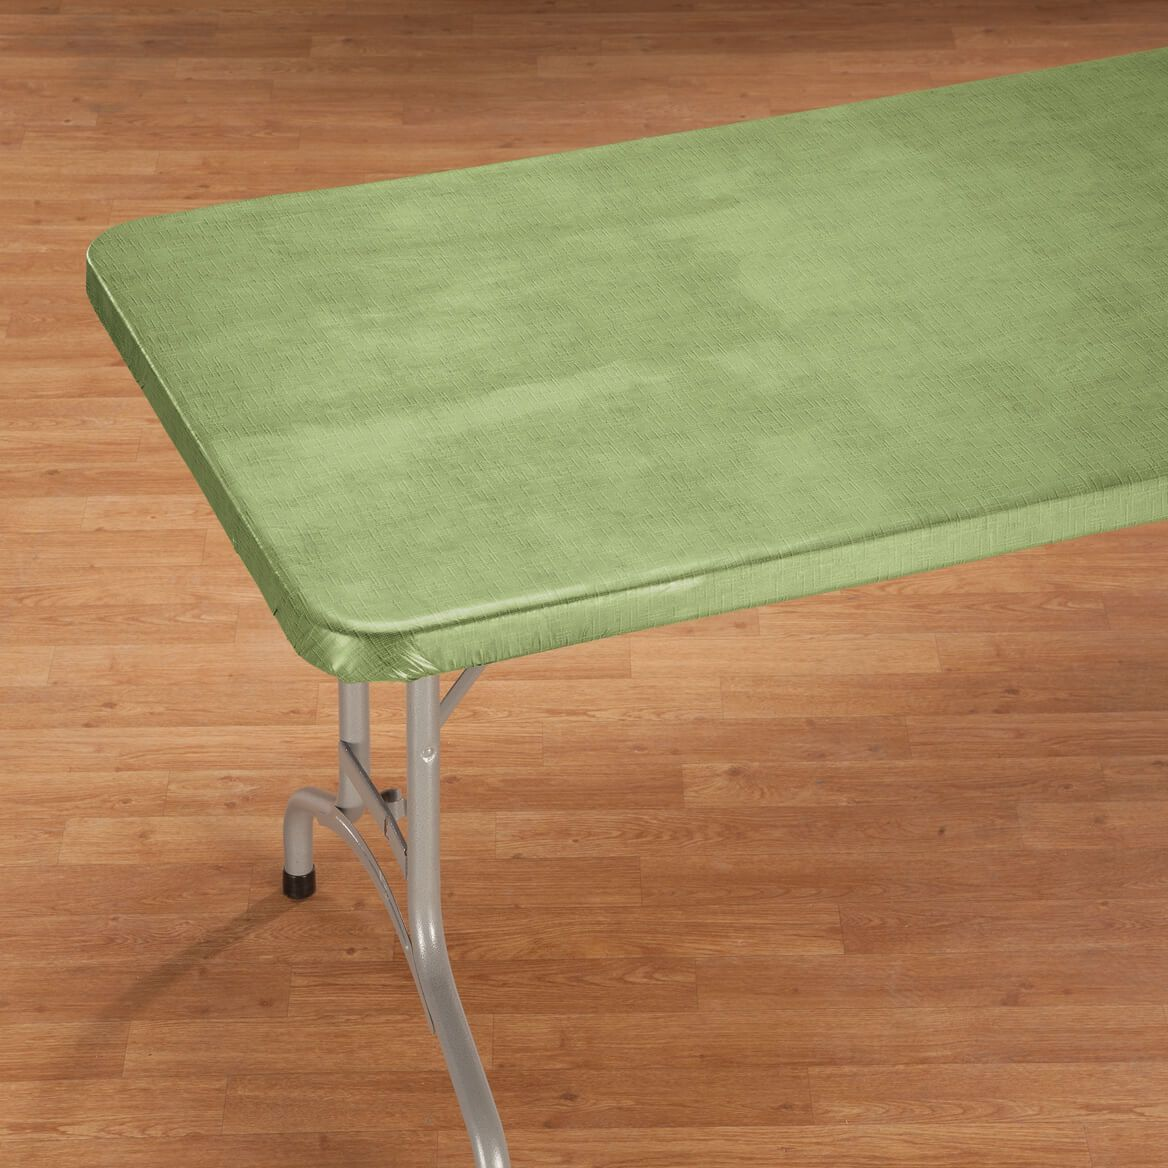 Illusion Weave Vinyl Elasticized Banquet Tablecover By Home-Style Kitchen™-356715